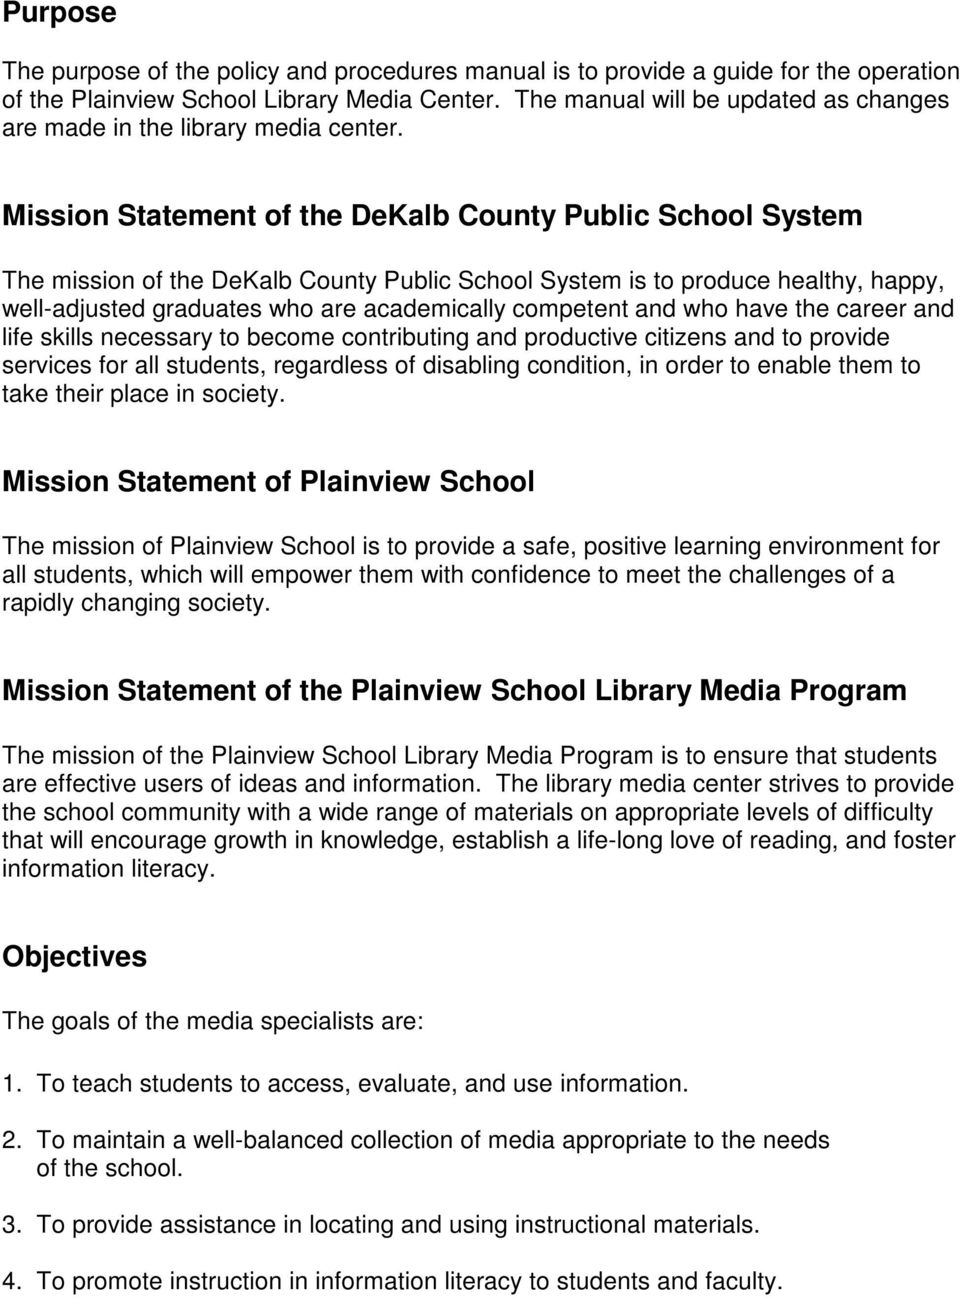 Mission Statement of the DeKalb County Public School System The mission of the DeKalb County Public School System is to produce healthy, happy, well-adjusted graduates who are academically competent